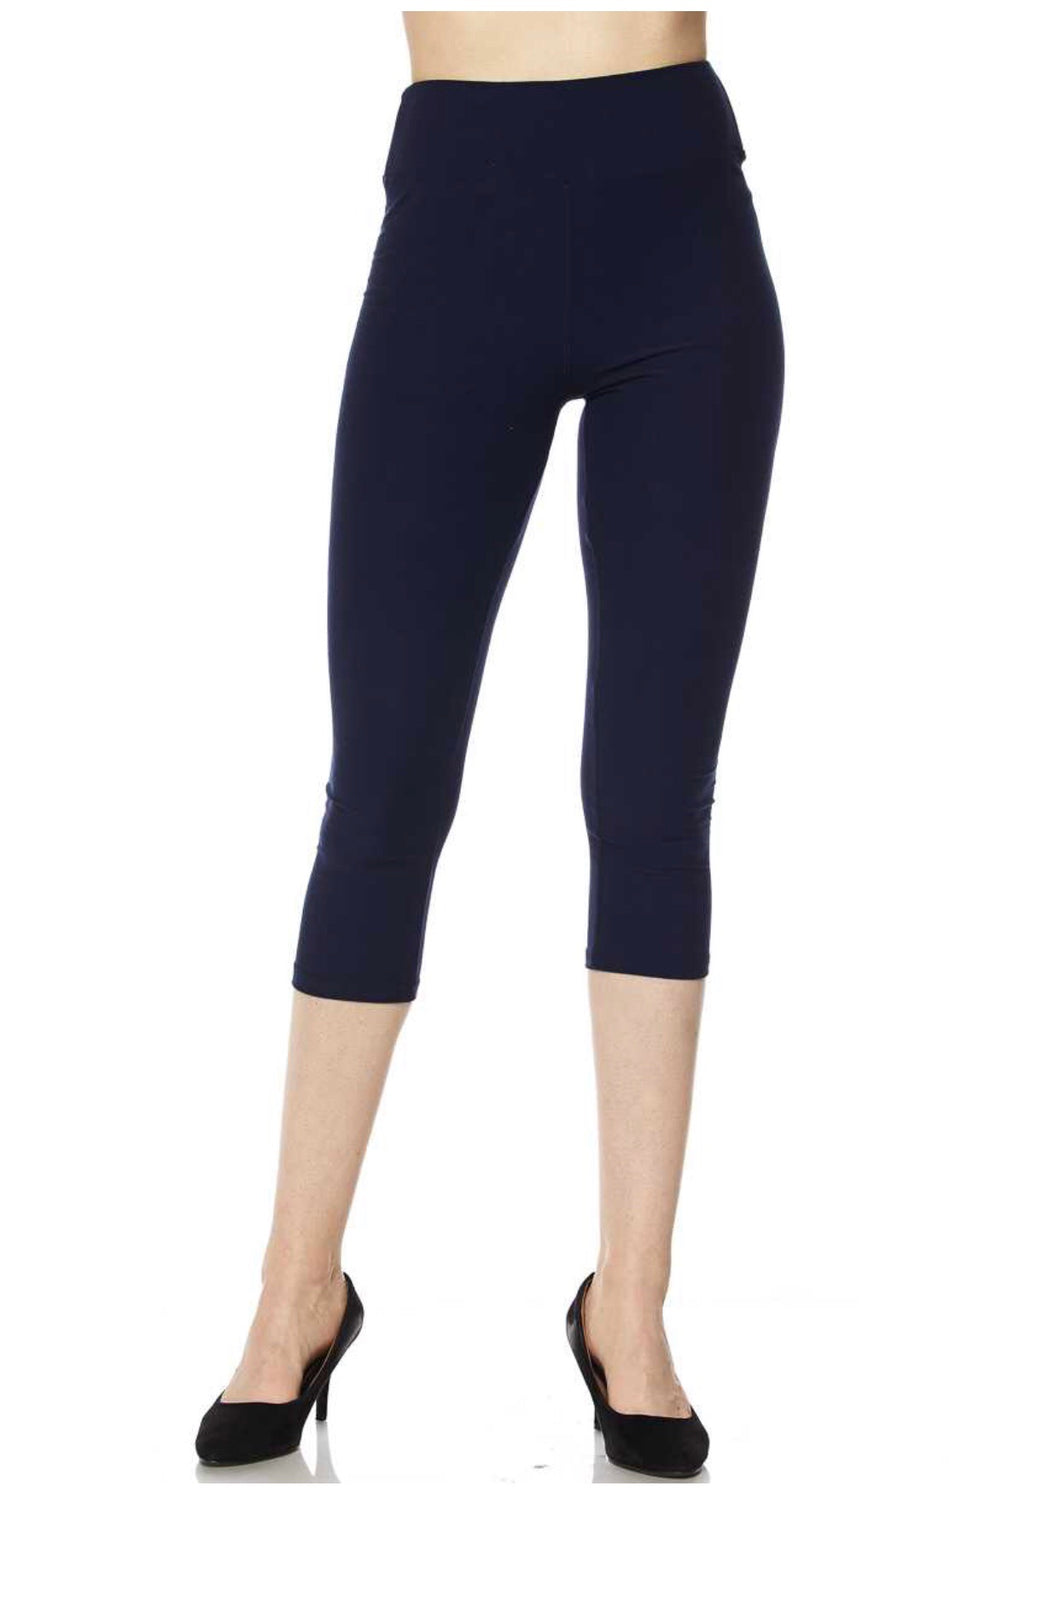 Navy Yoga Band Capris